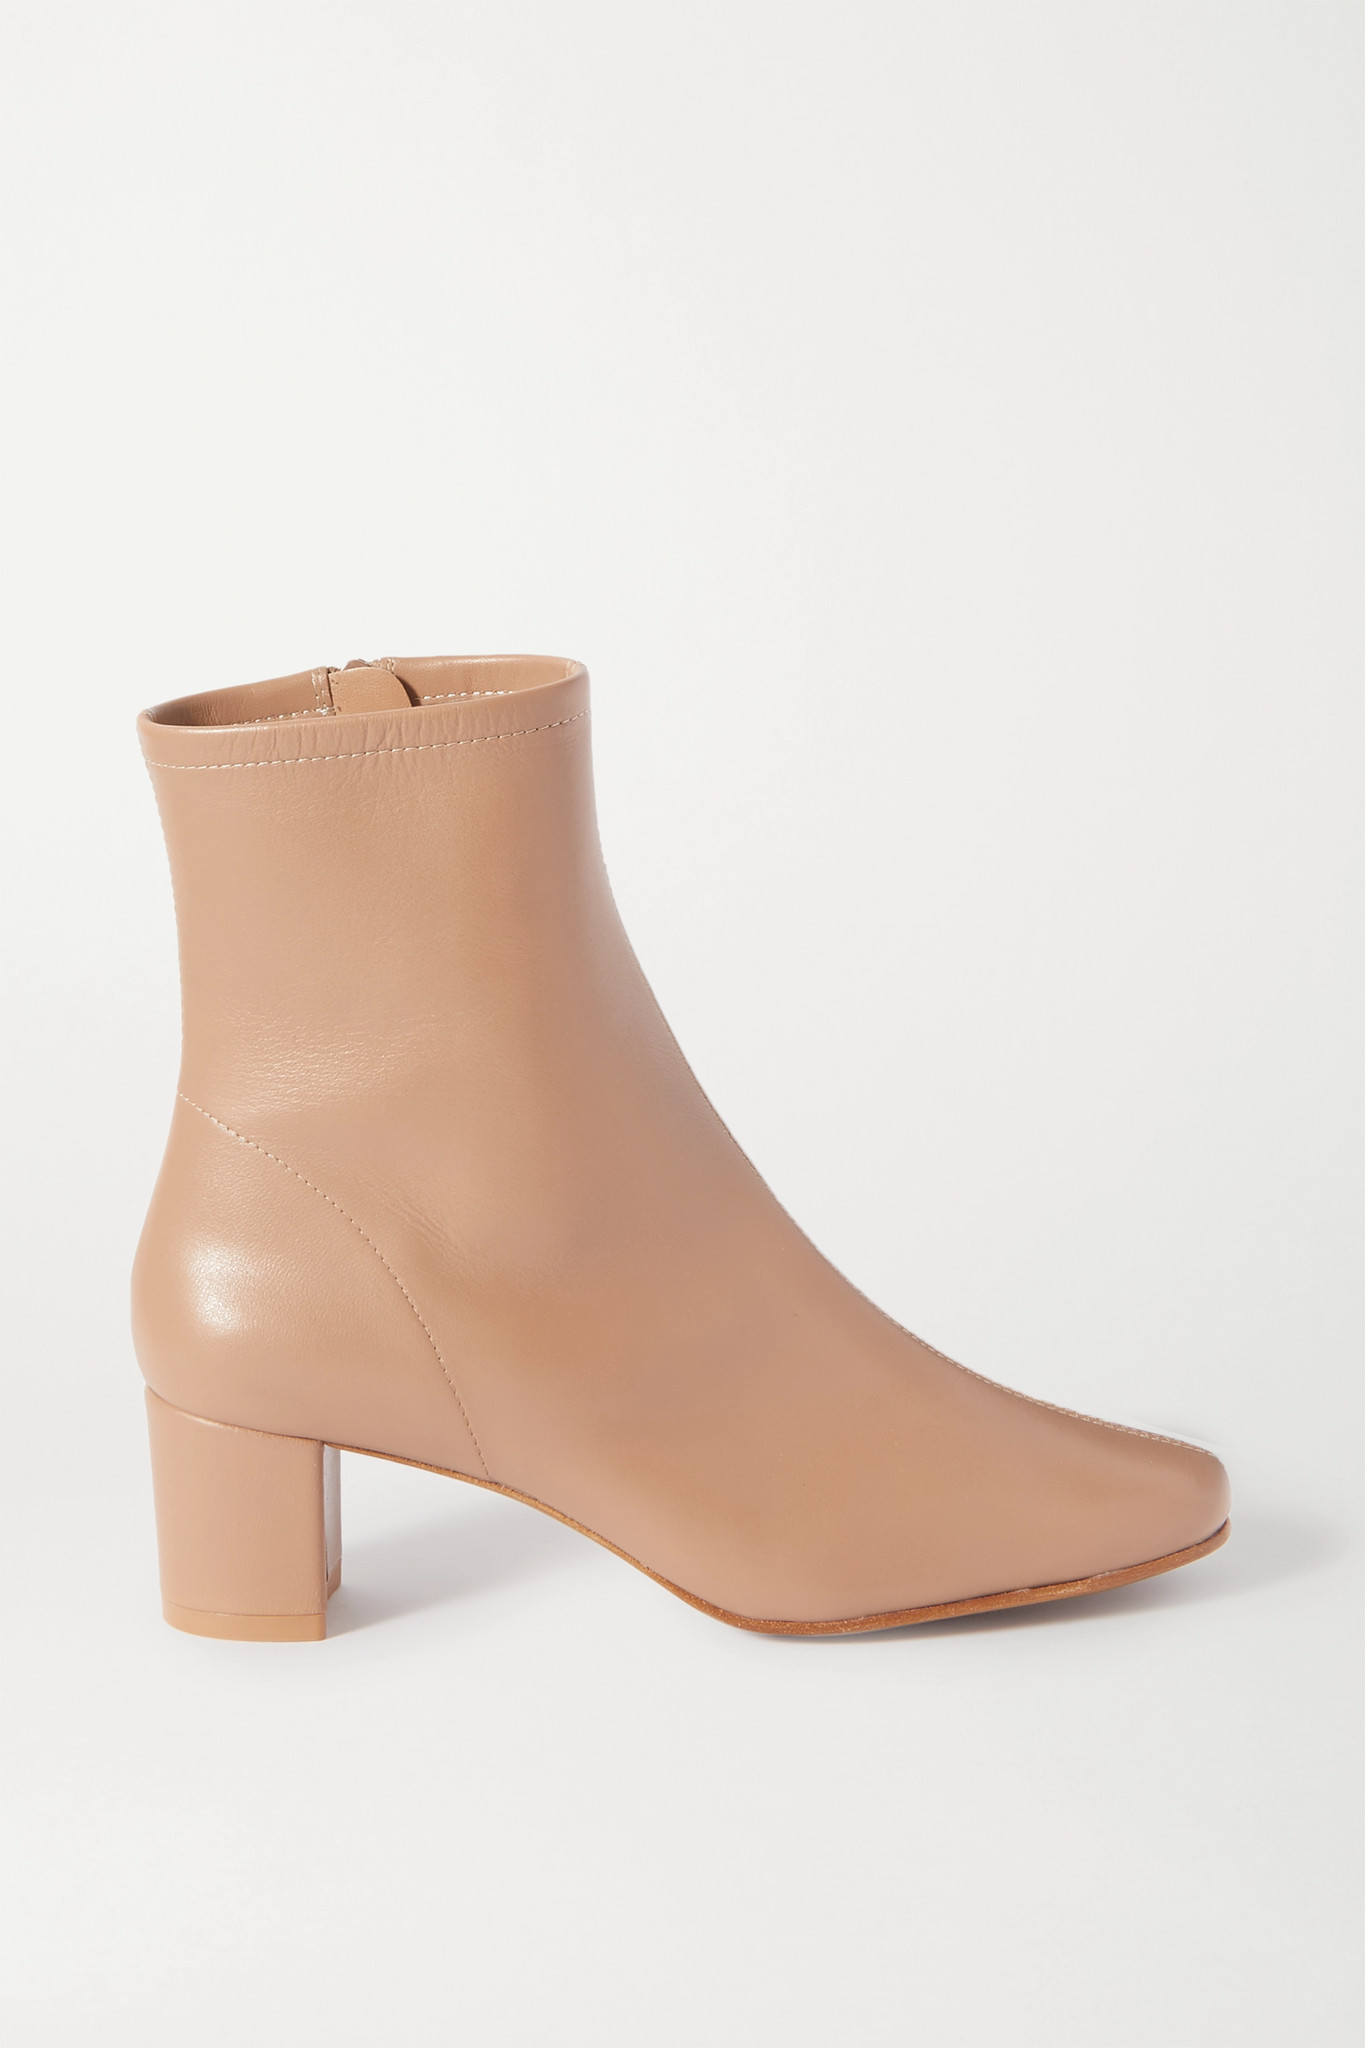 BY FAR - Sofia Leather Ankle Boots - Neutrals - IT40